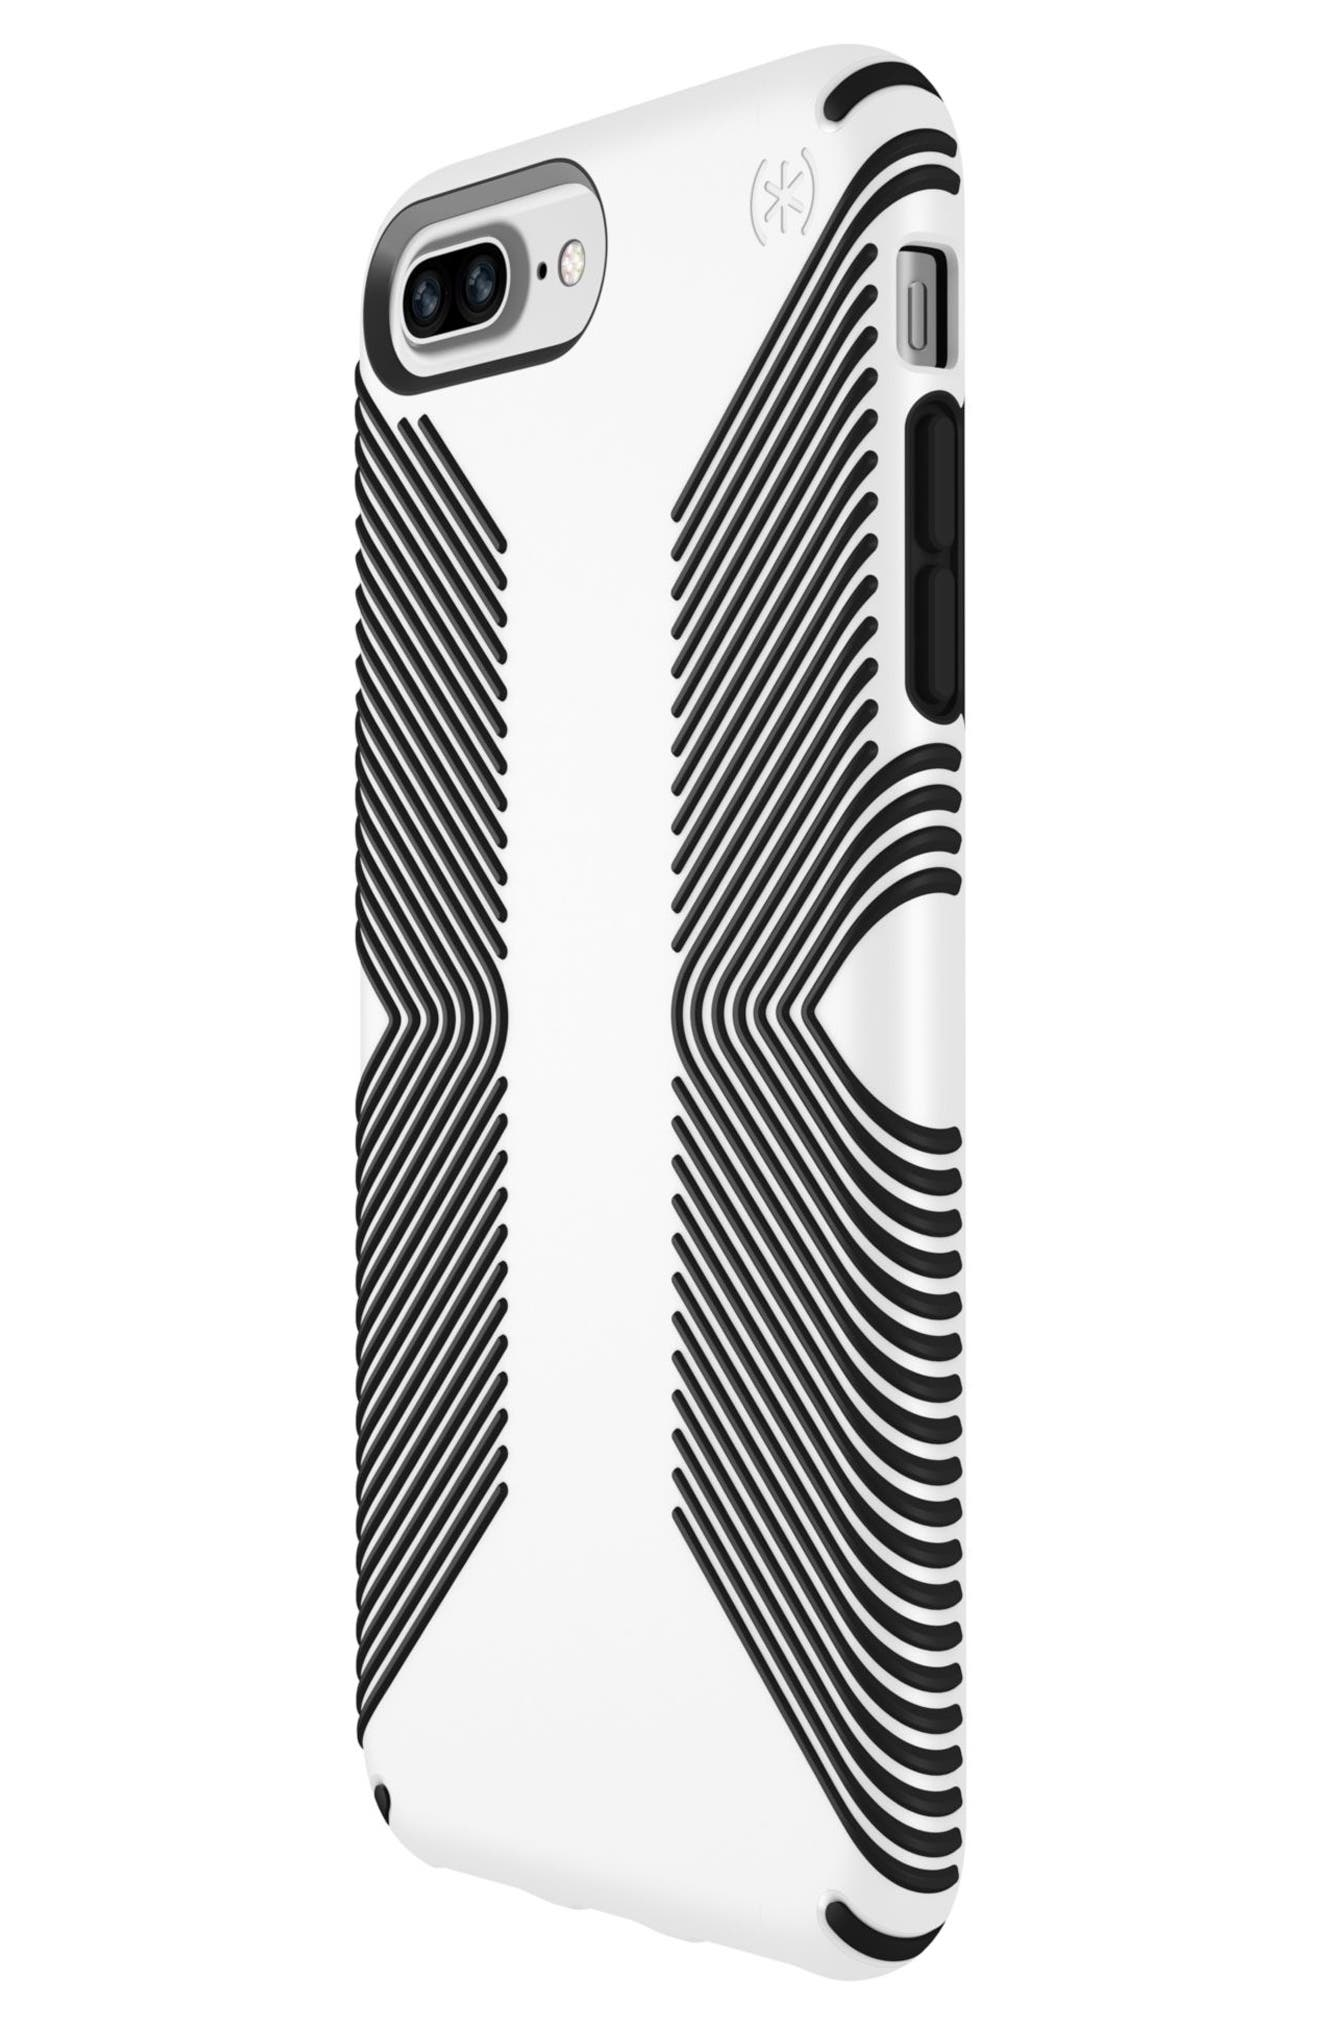 Grip iPhone 6/6s/7/8 Plus Case,                             Alternate thumbnail 3, color,                             White/ Black